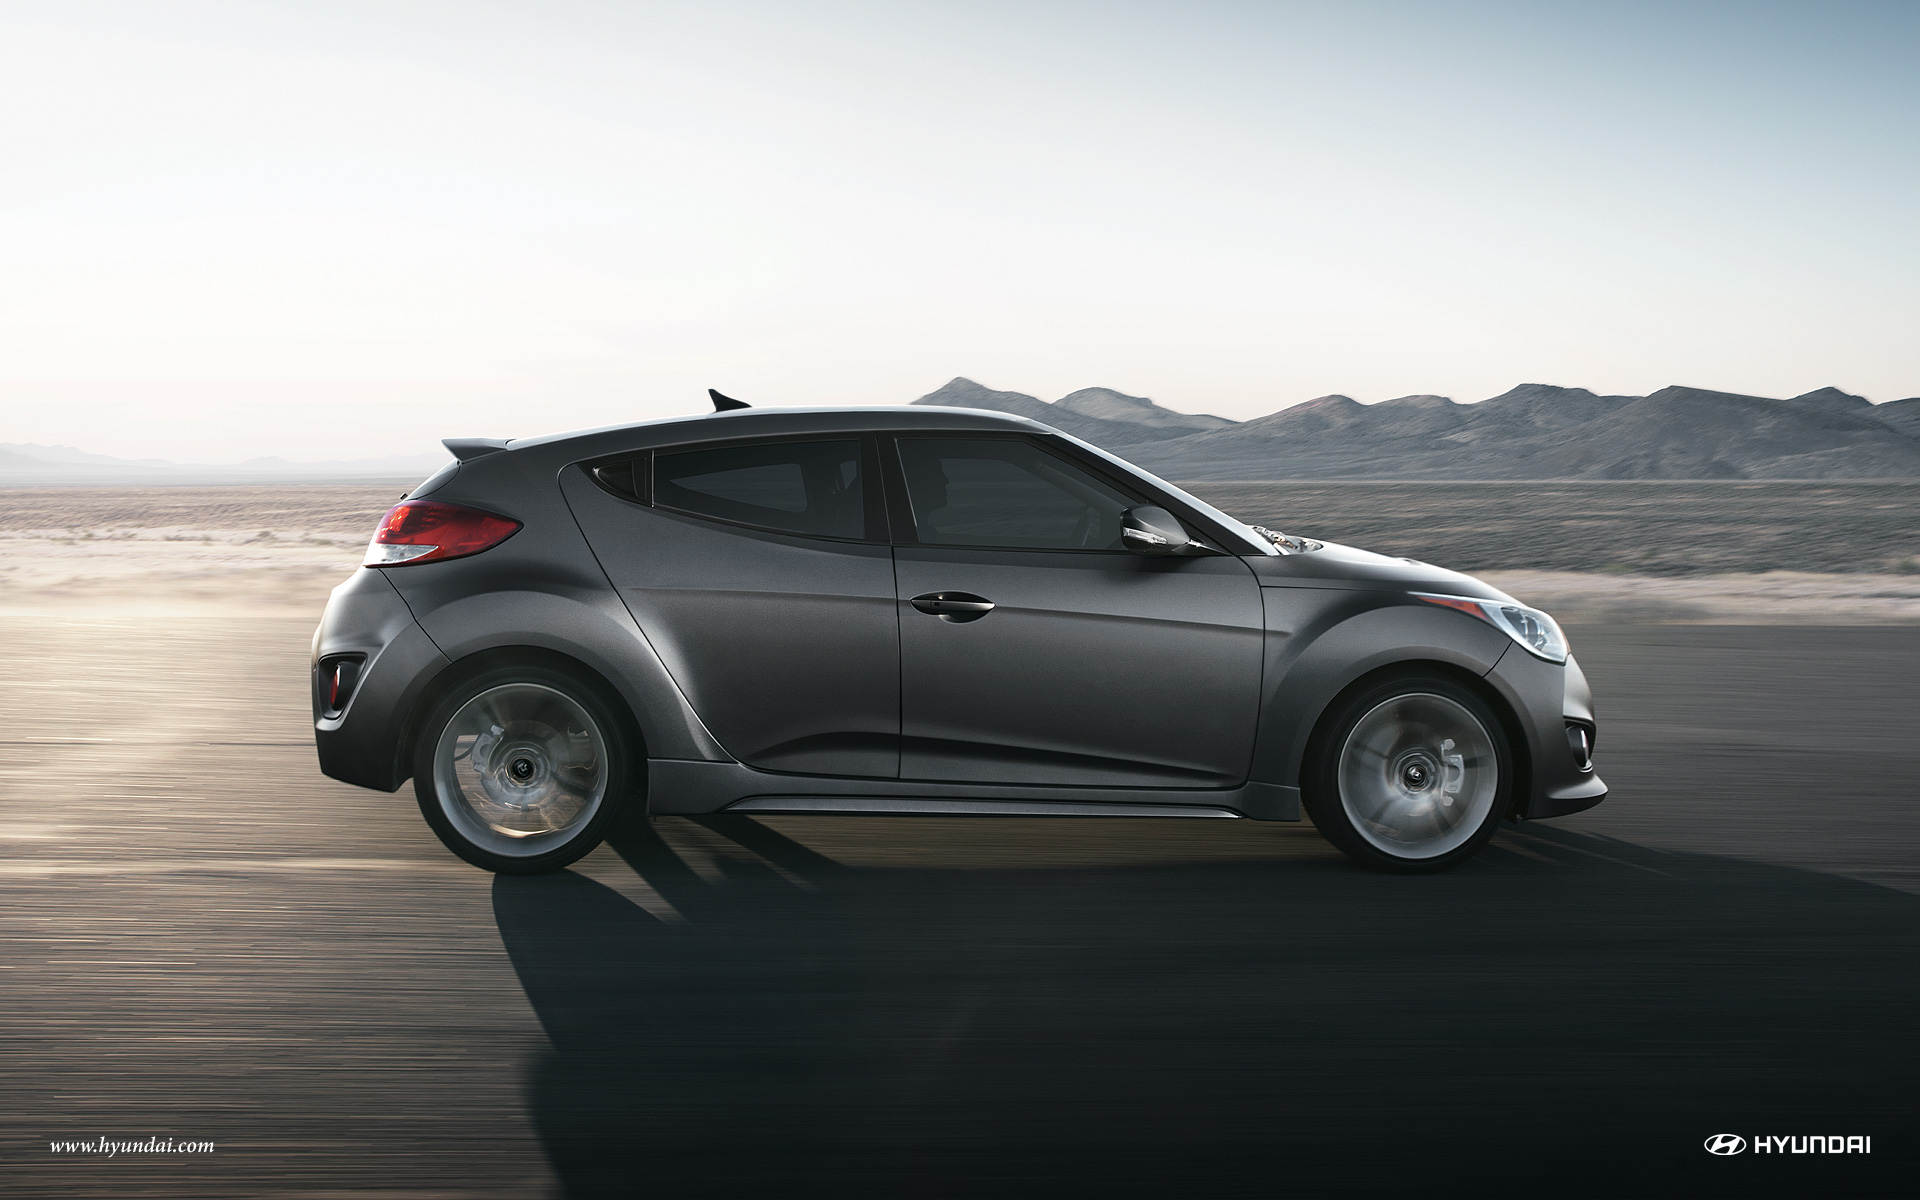 info at photos hyundai ride modification veloster specs dcizzle